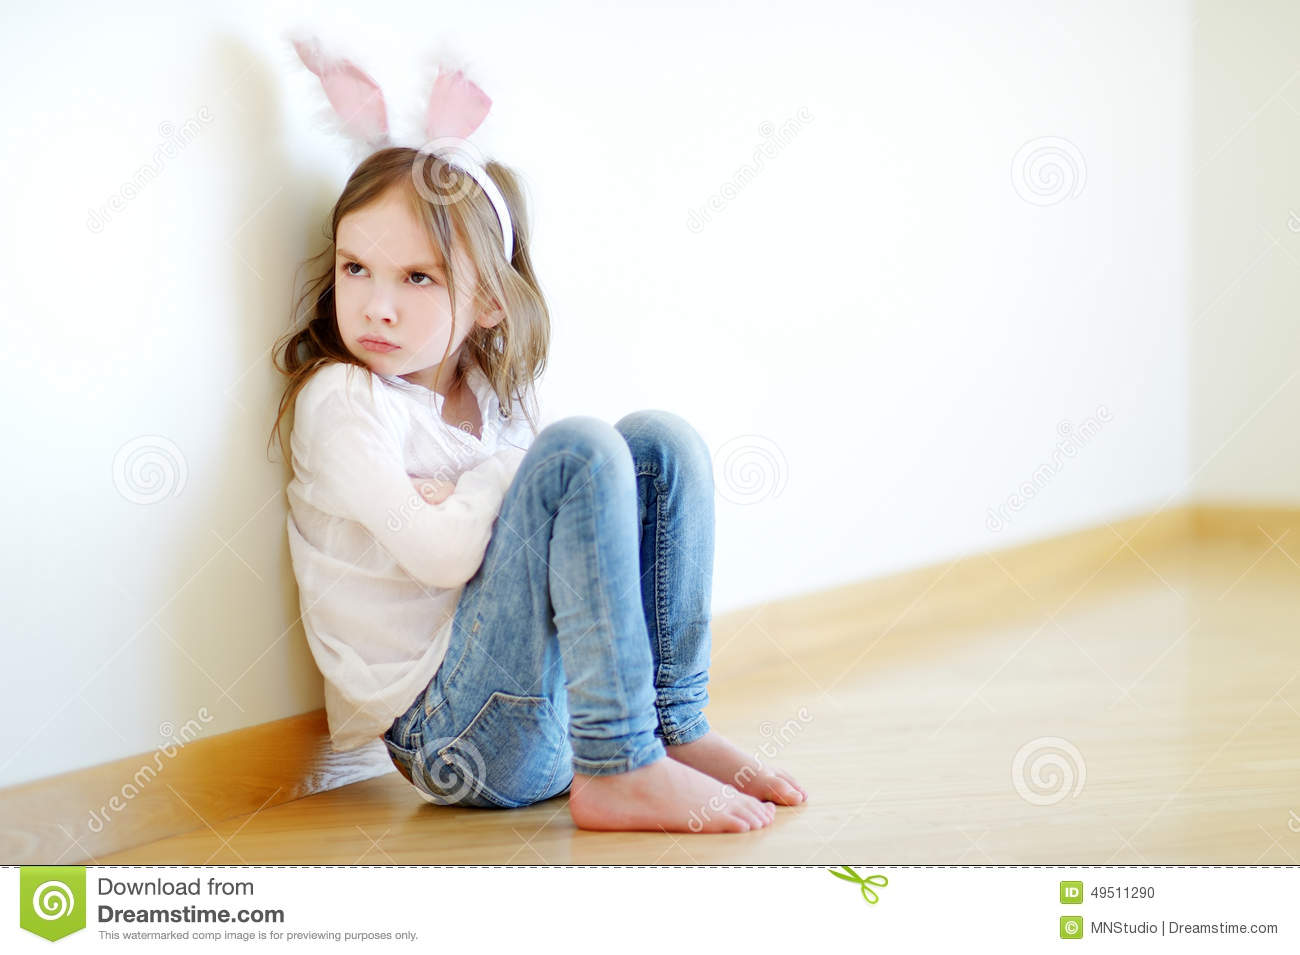 Very angry little girl wearing bunny ears sitting on a floor at home.